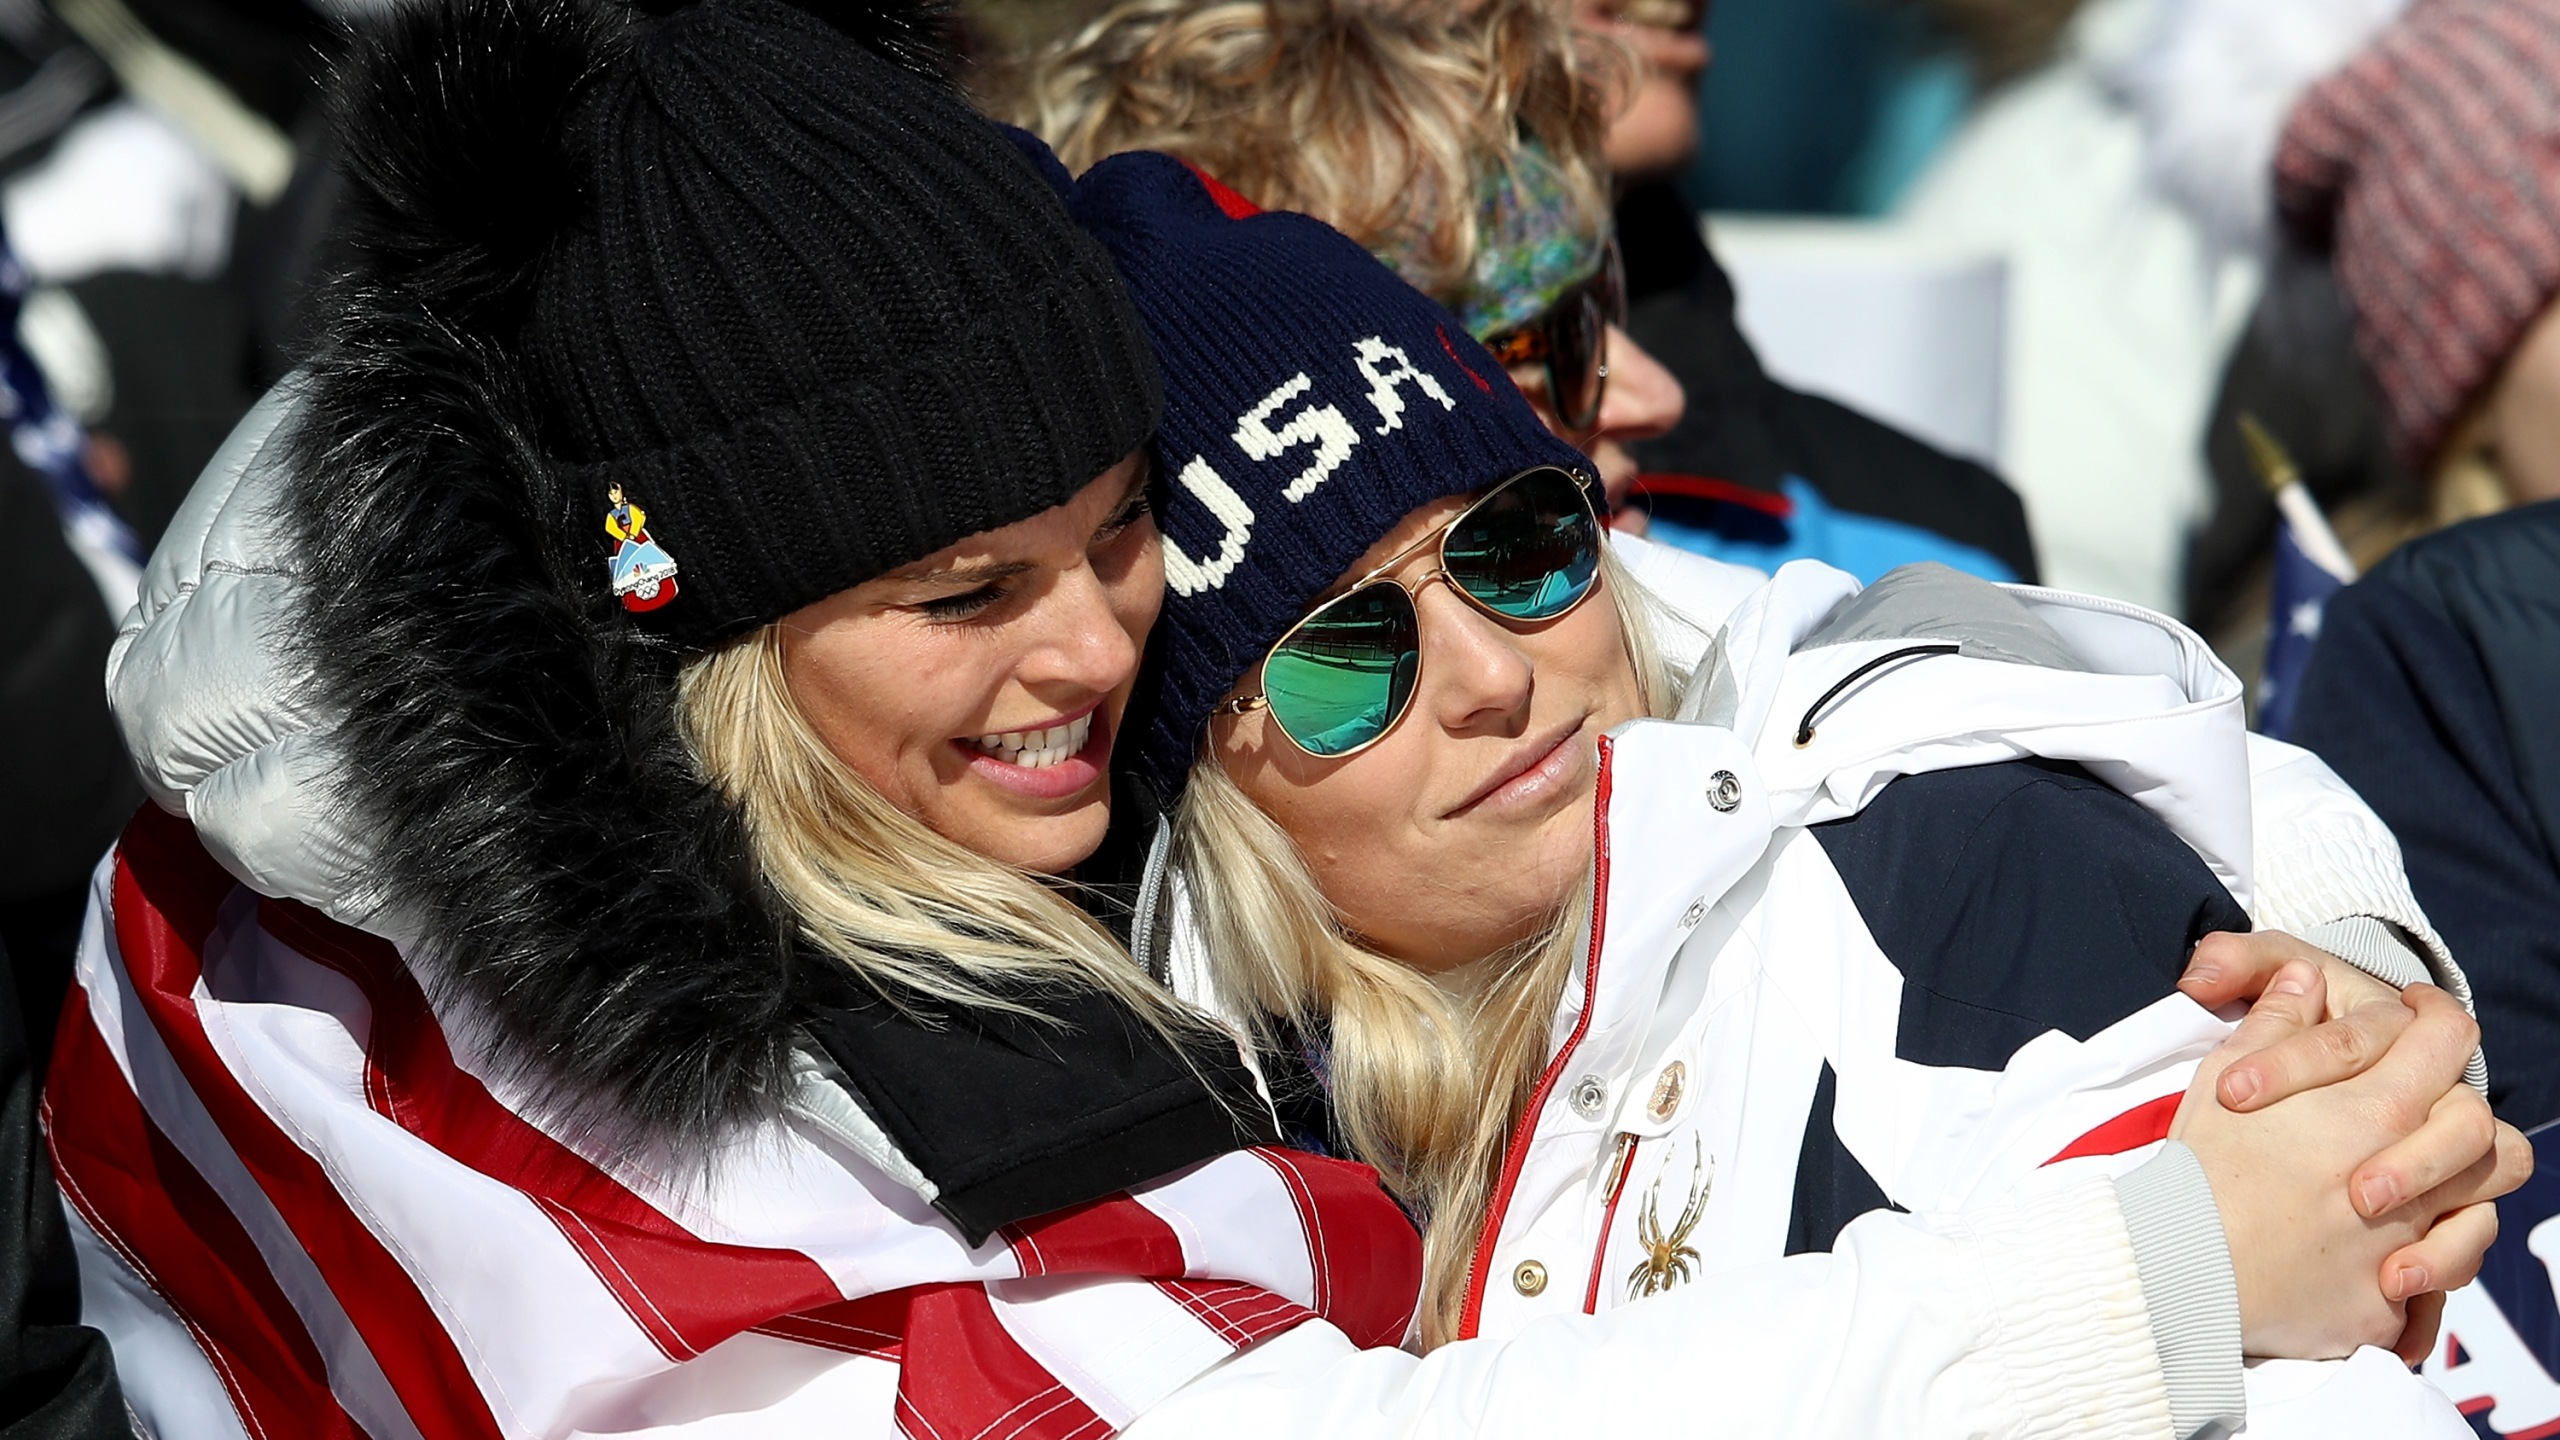 Lindsey Vonn of the United States, at right, is consoled at the finish during the Alpine Skiing Ladies Super-G at the PyeongChang 2018 Winter Olympics on Feb. 17, 2018. (Credit: Clive Mason / Getty Images)